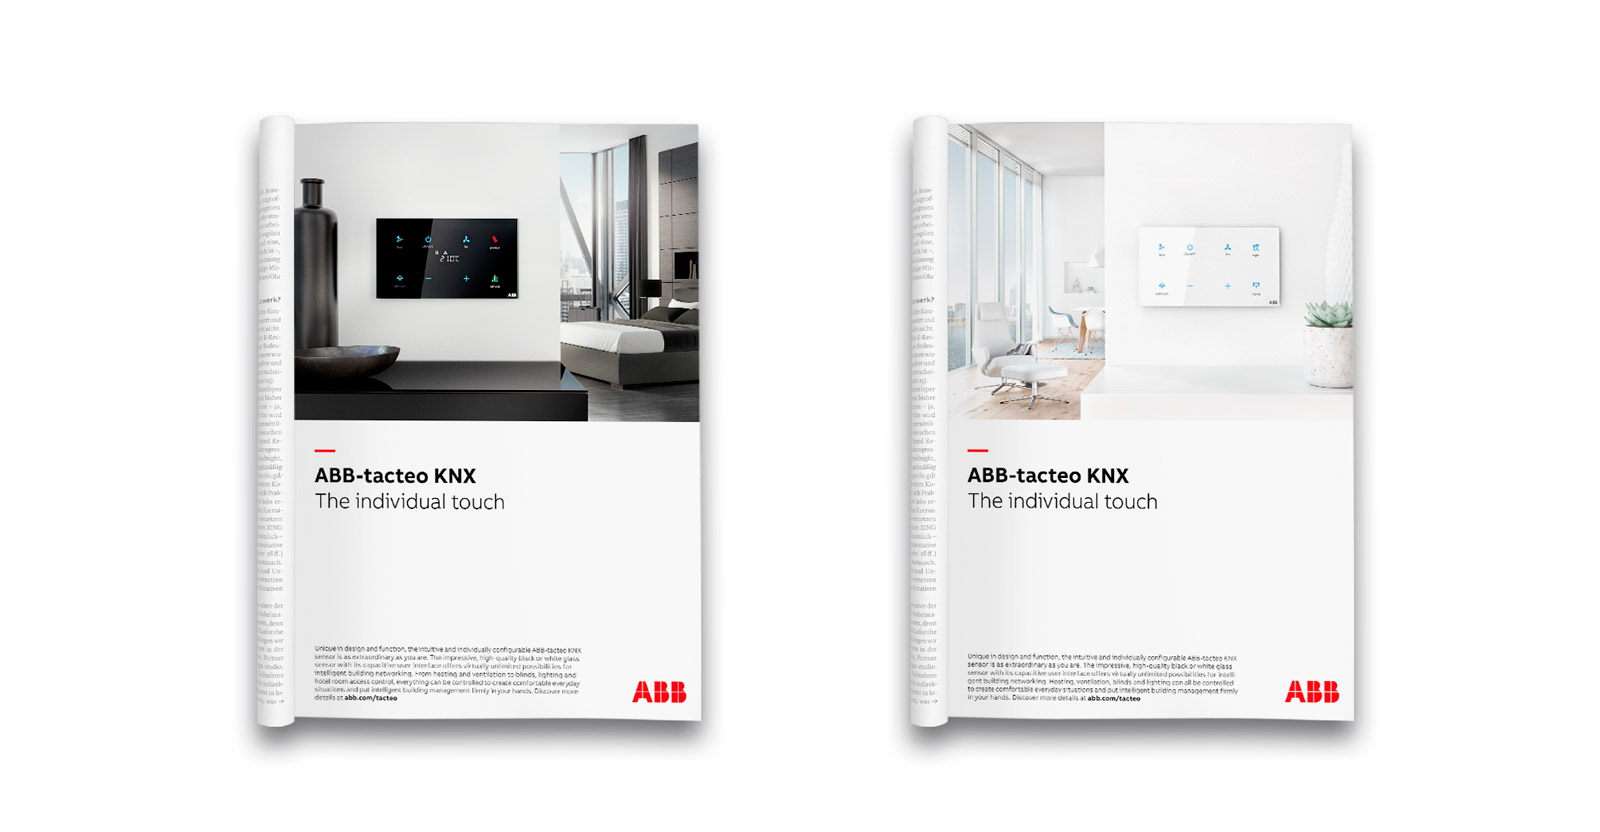 ABB_Tacteo_Slider01